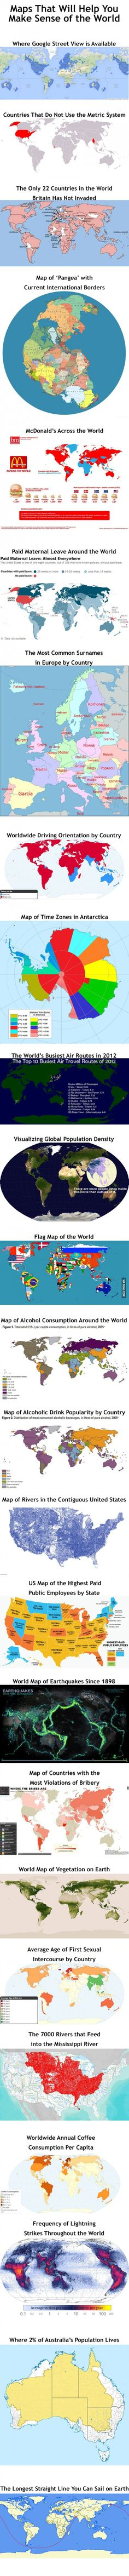 Maps That Will Help You Make Sense Of The World